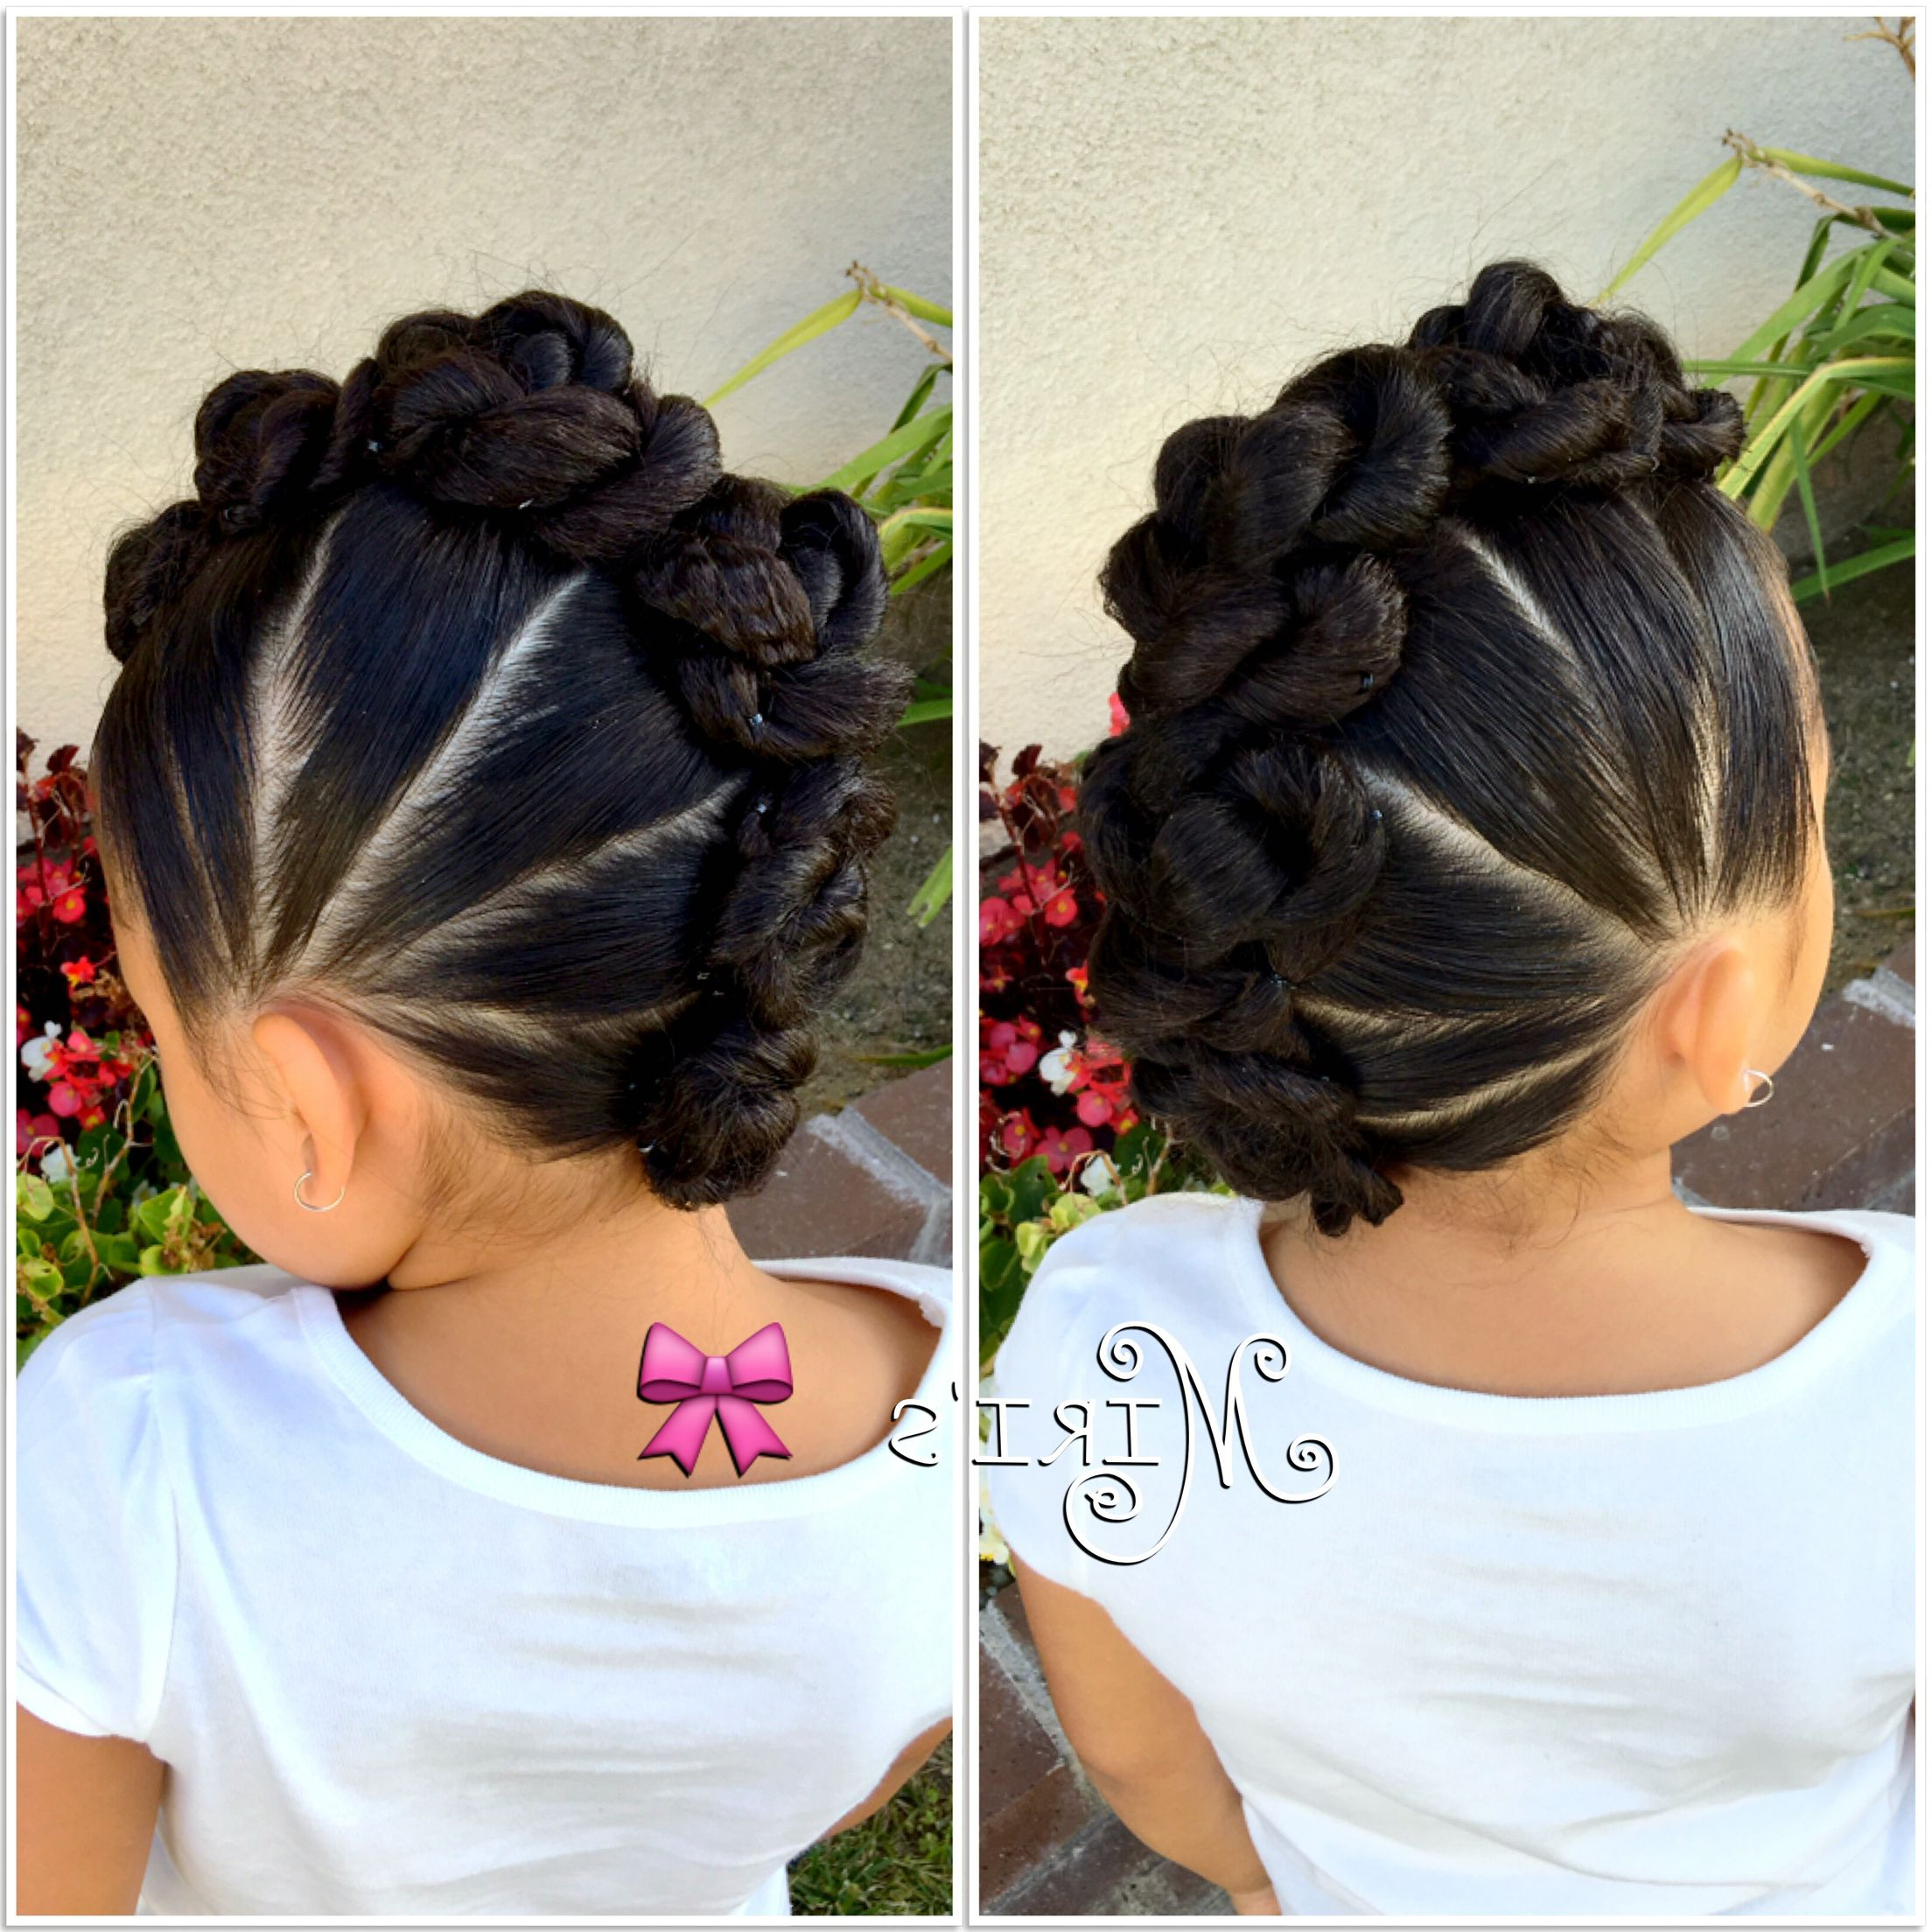 Mohawk With Twists Hair Style For Little Girls (View 11 of 20)